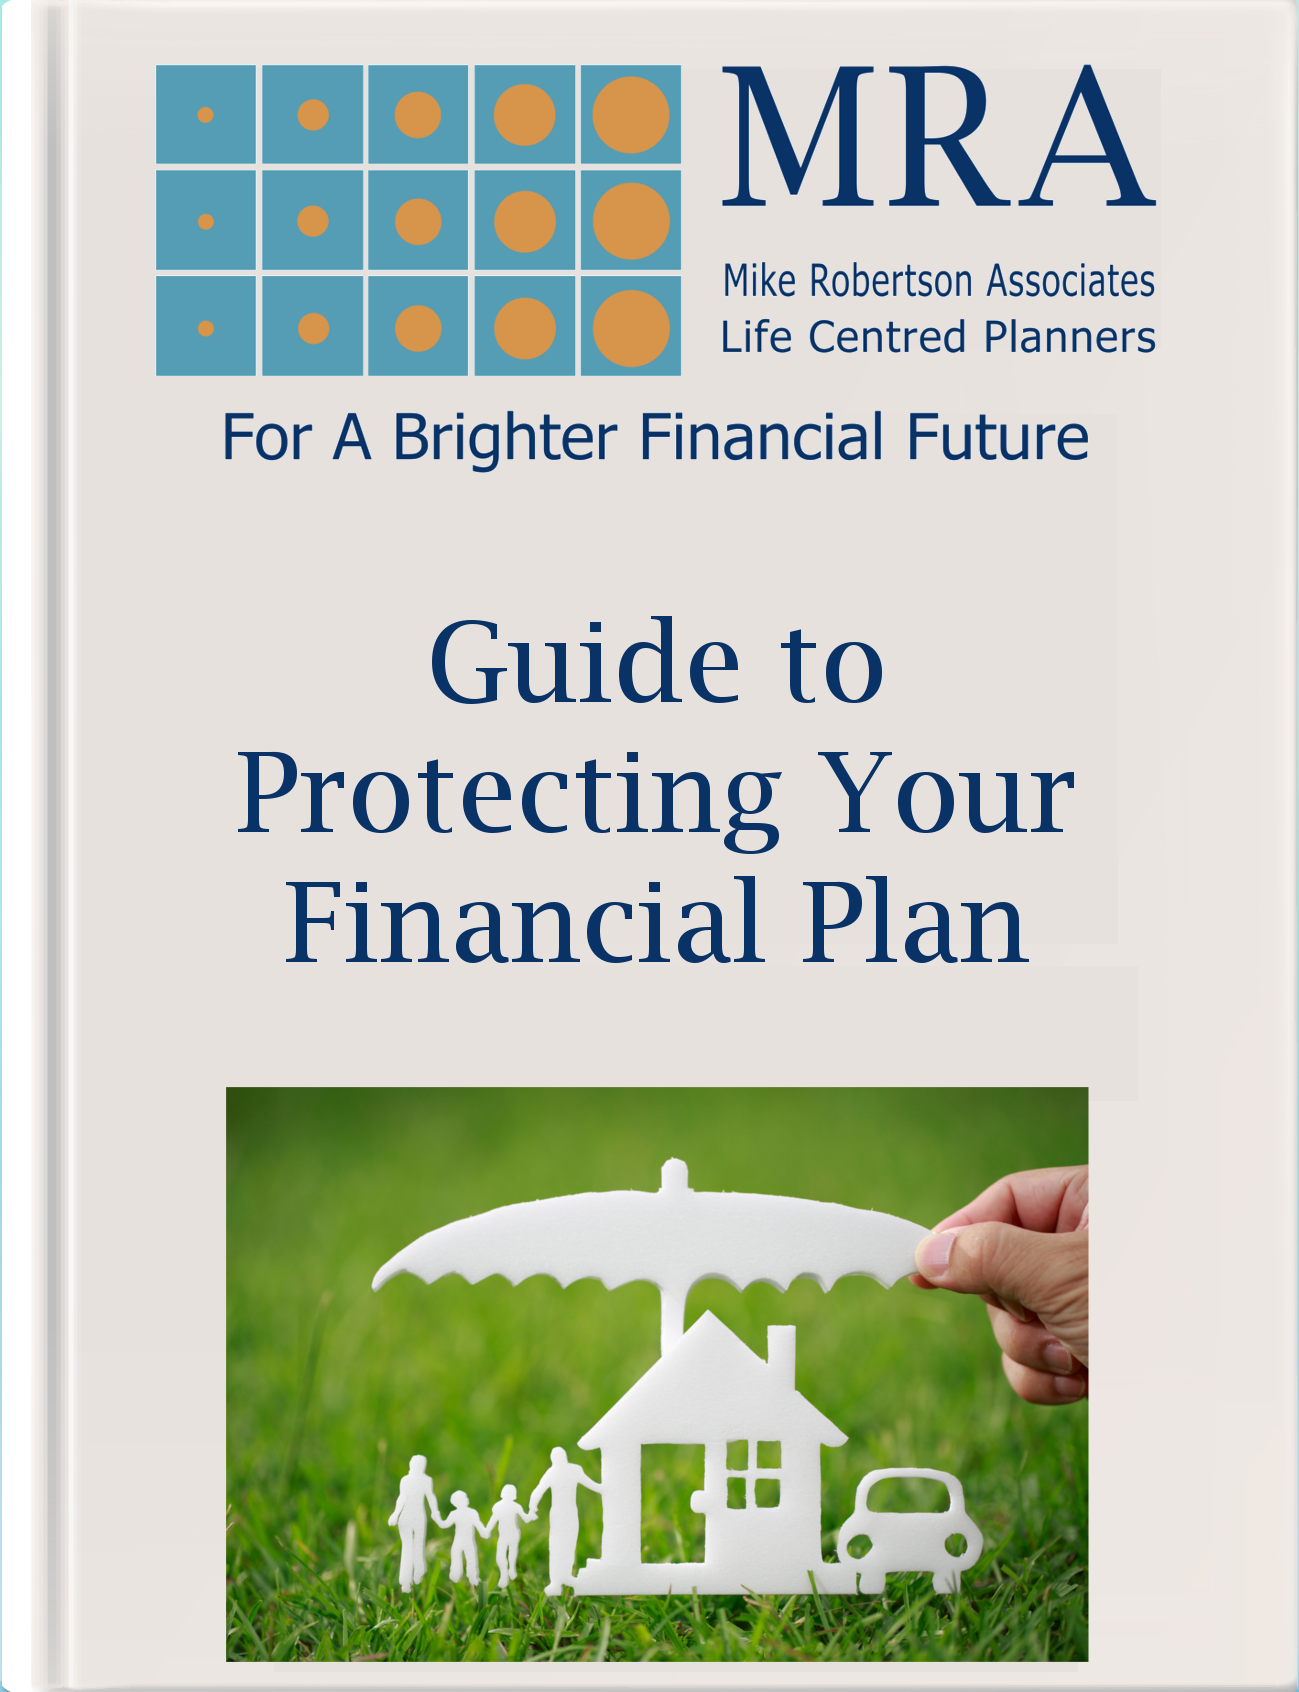 Download our Guide to Protecting Your Financial Plan